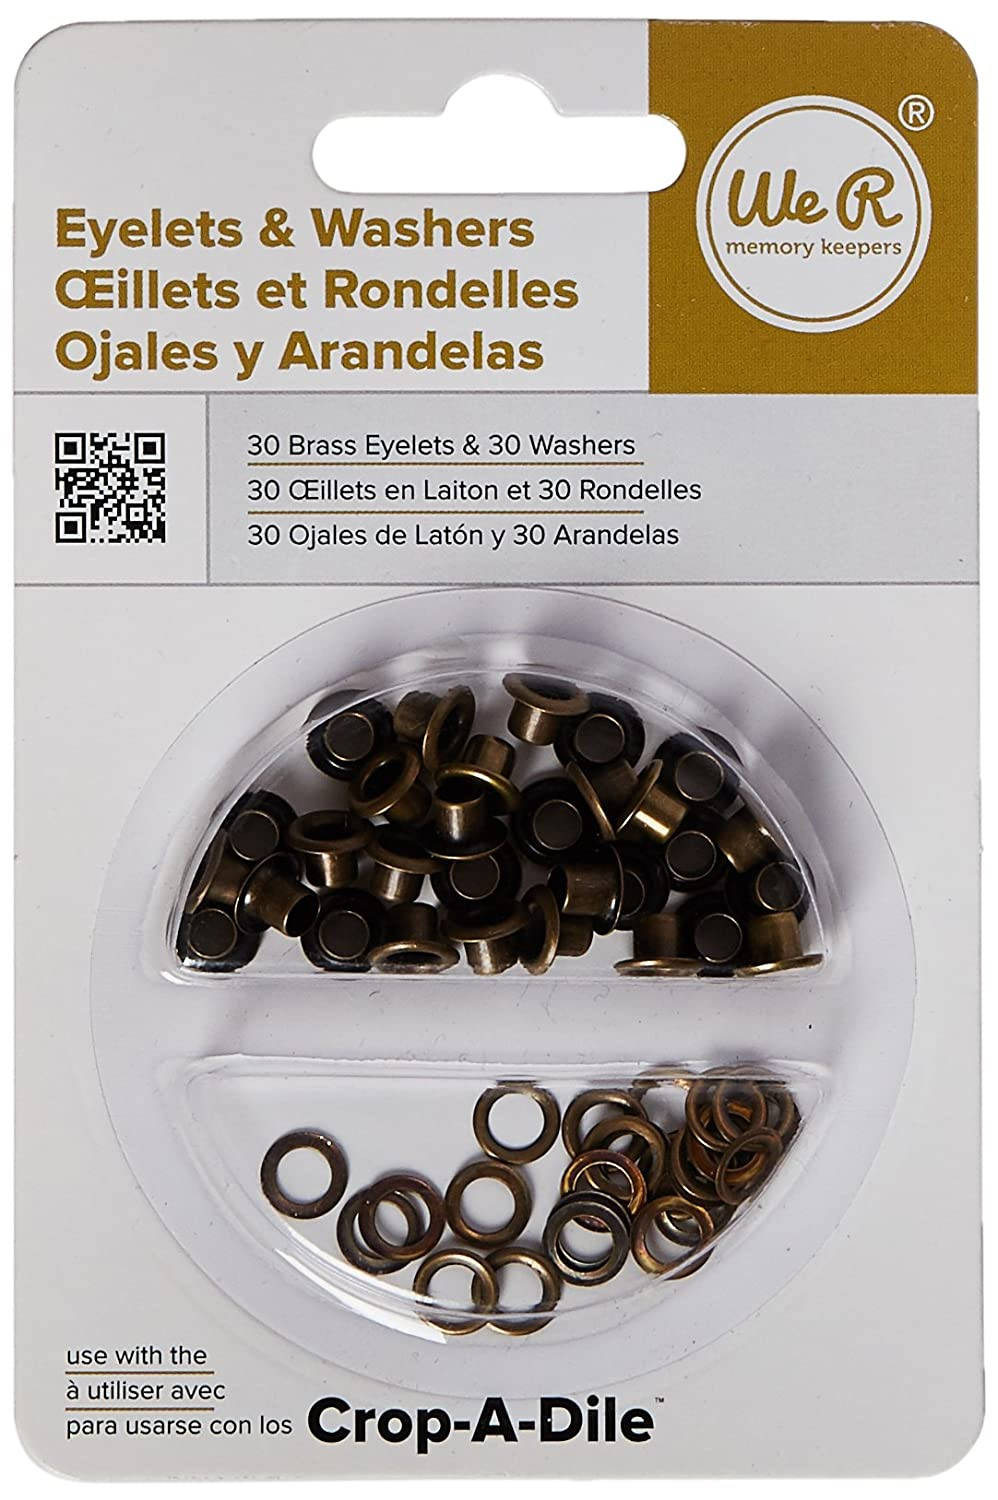 Eyelet and Washer Brass 60 Pieces 30 eyelets 30 washers